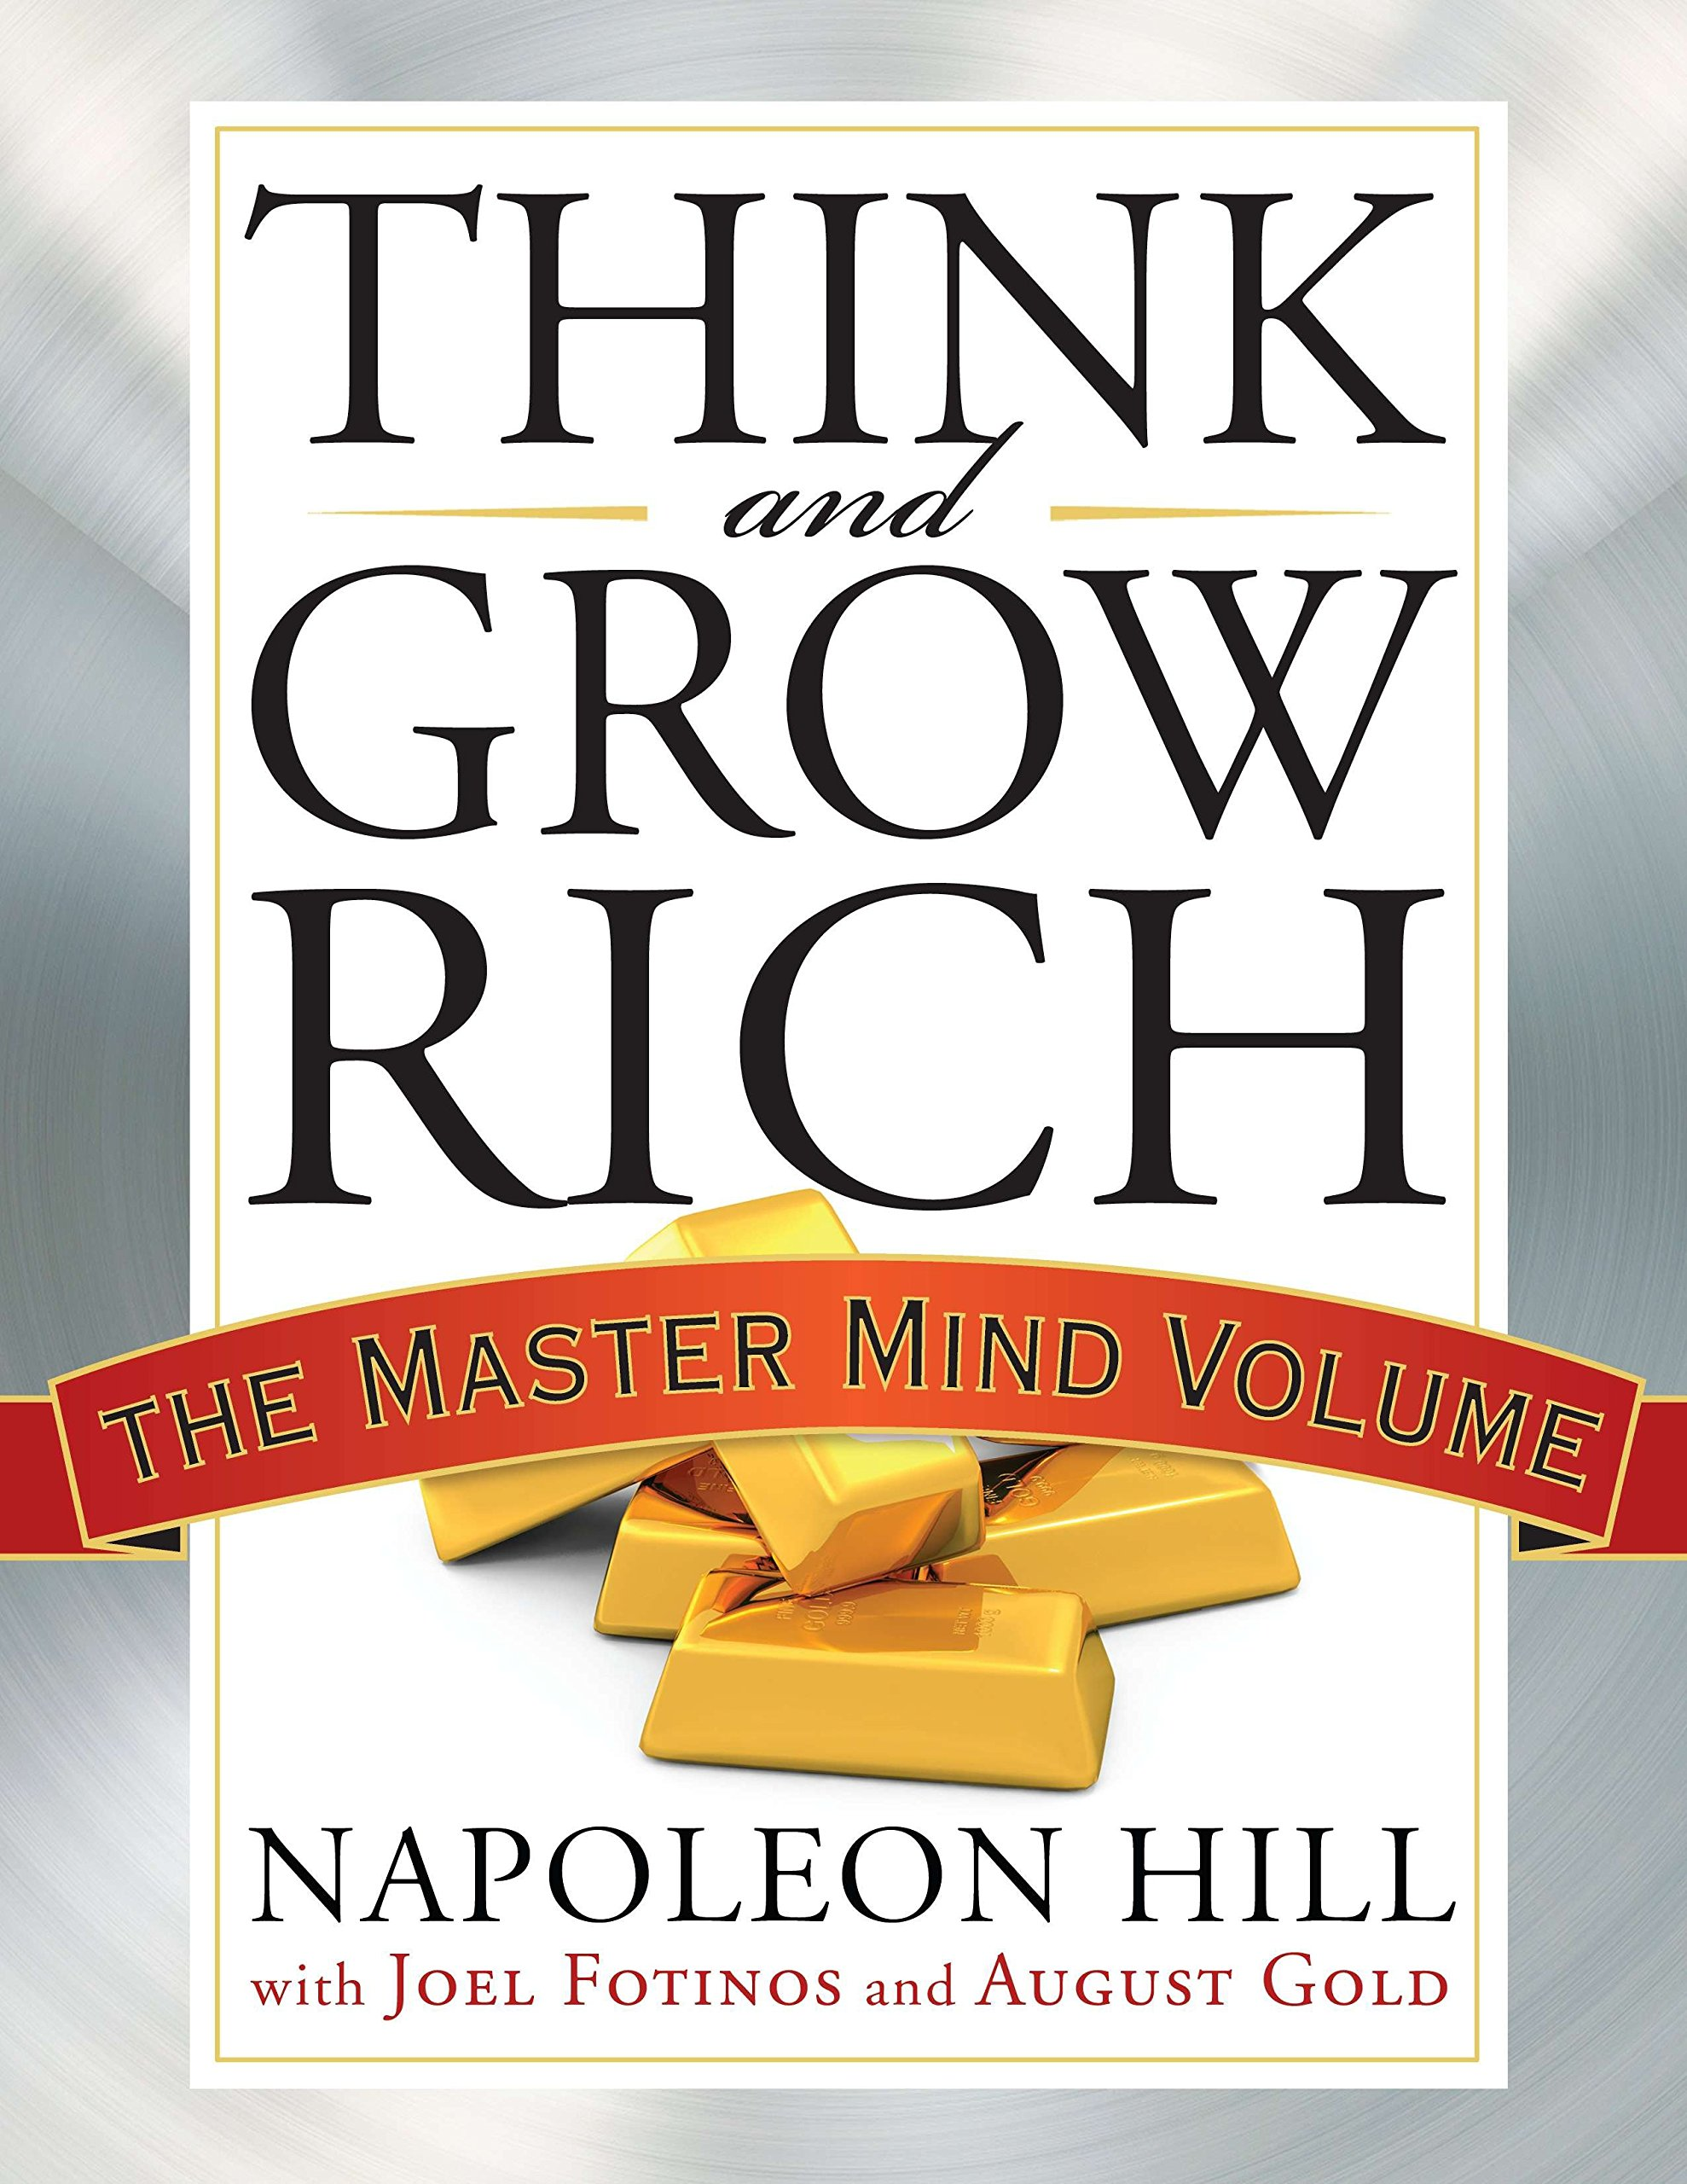 Motivational Book by Napoleon Hill